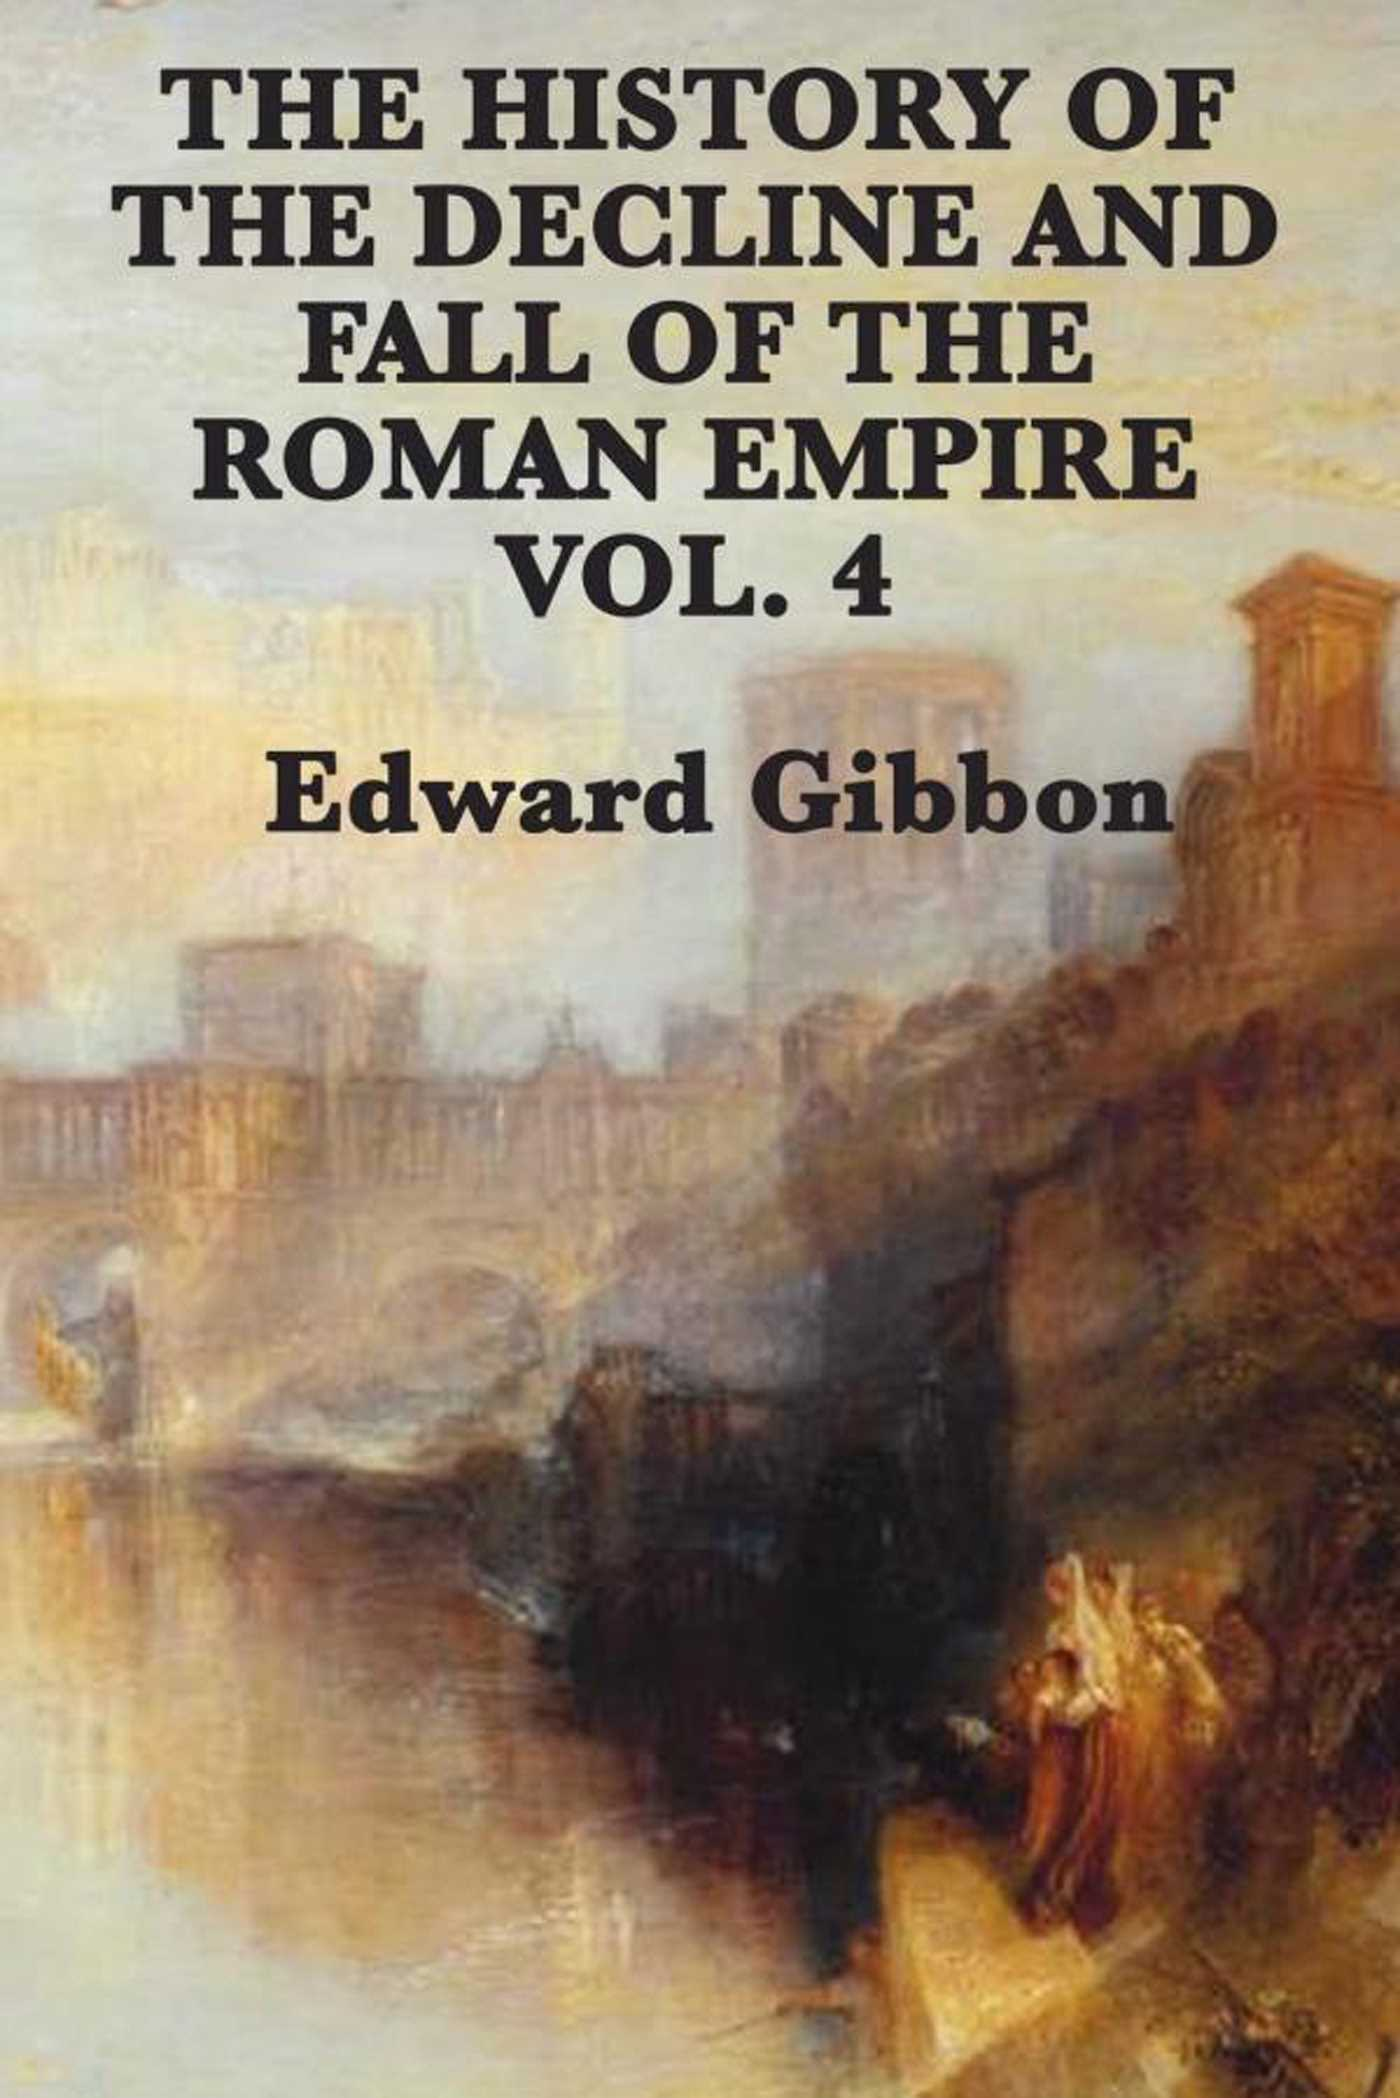 An analysis of the decline of the roman empire